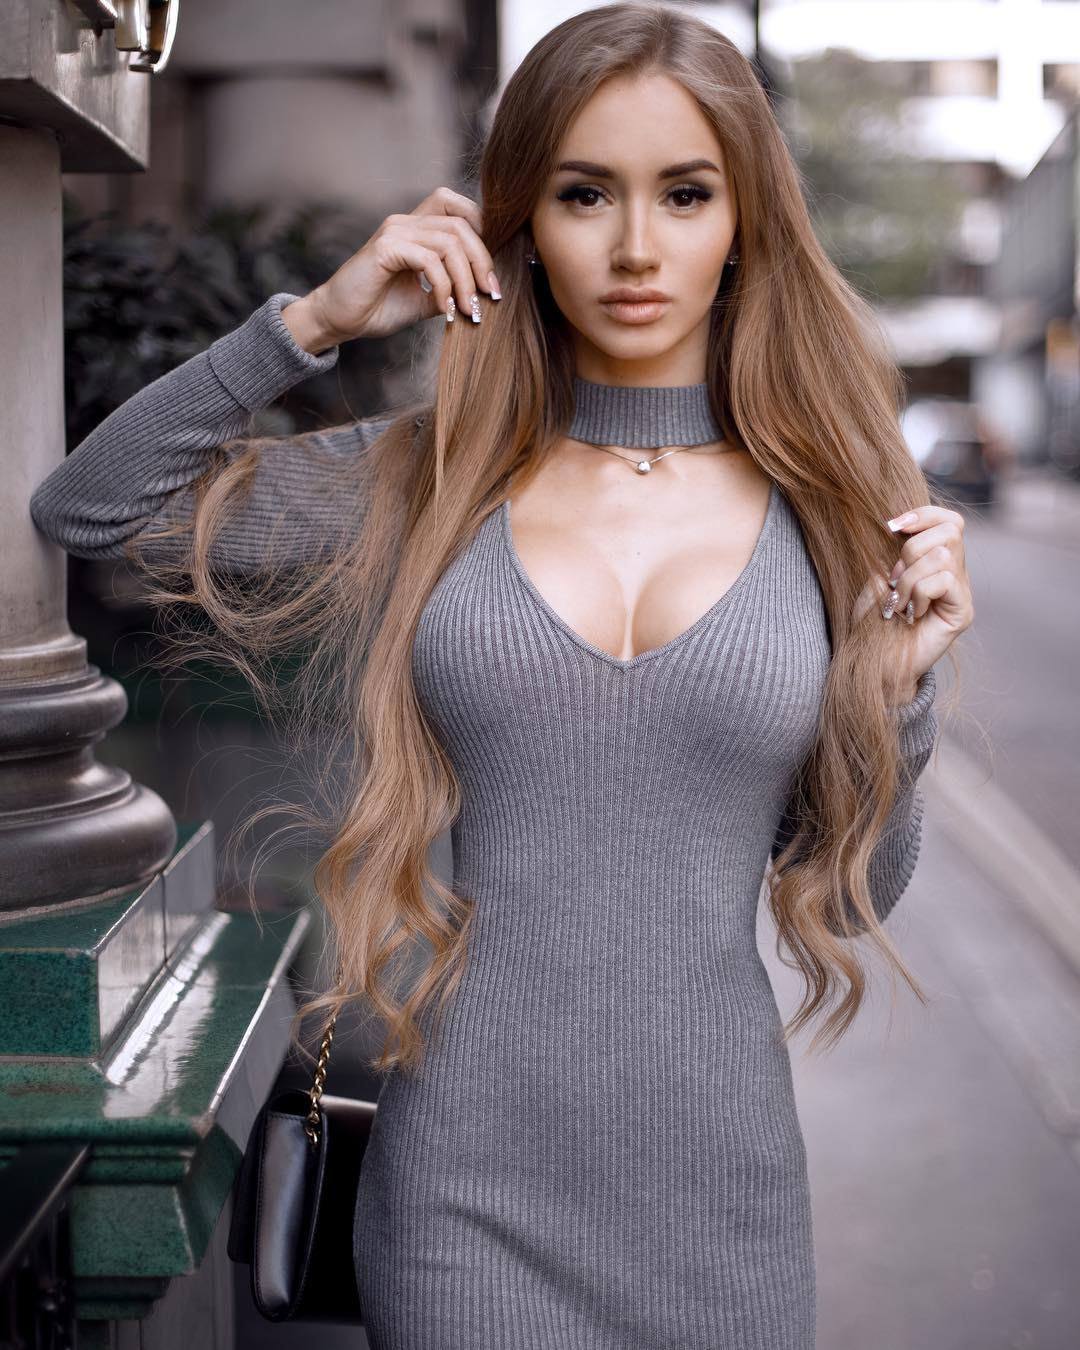 Valenti-Vitel-Wallpapers-Insta-Fit-Bio-13